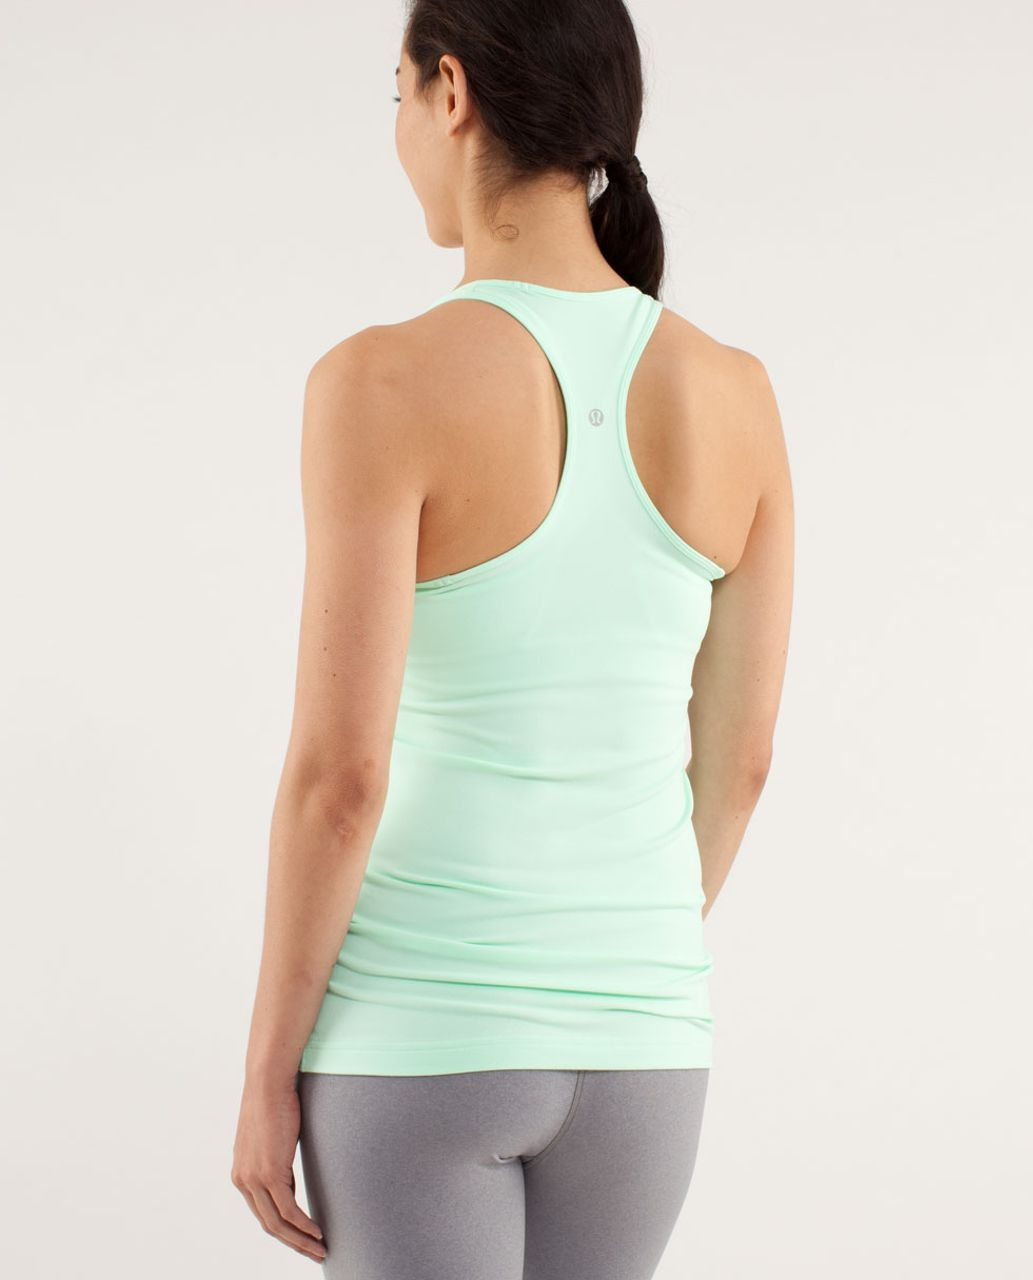 Lululemon Cool Racerback (First Release) - Fresh Teal